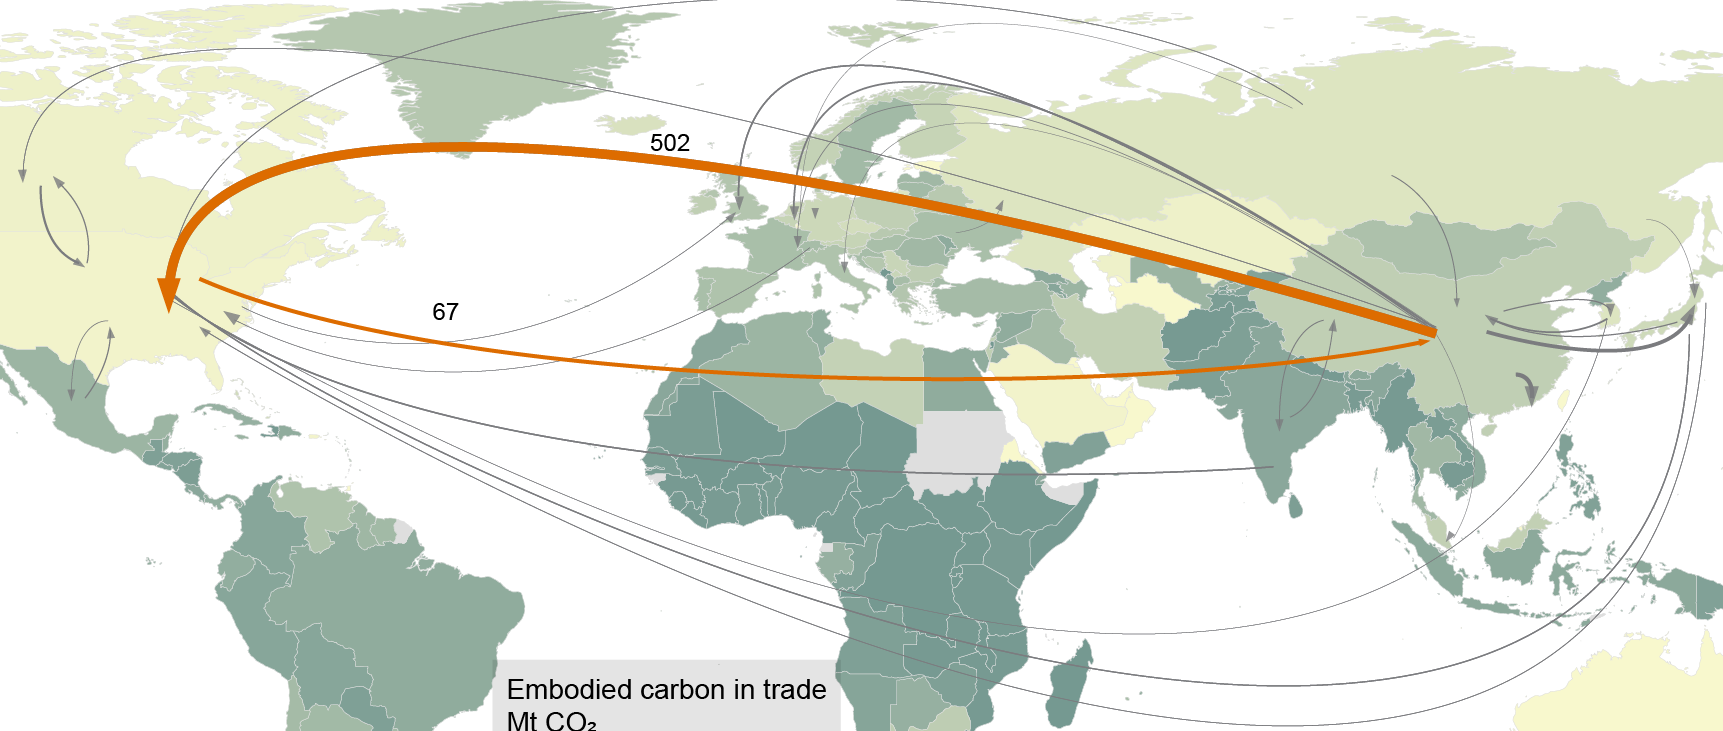 Source: KGM & Associate and Global Efficiency Intelligence analysis   Figure. Embodied Carbon in the U.S.-China Trade in 2015 (Million ton CO2)